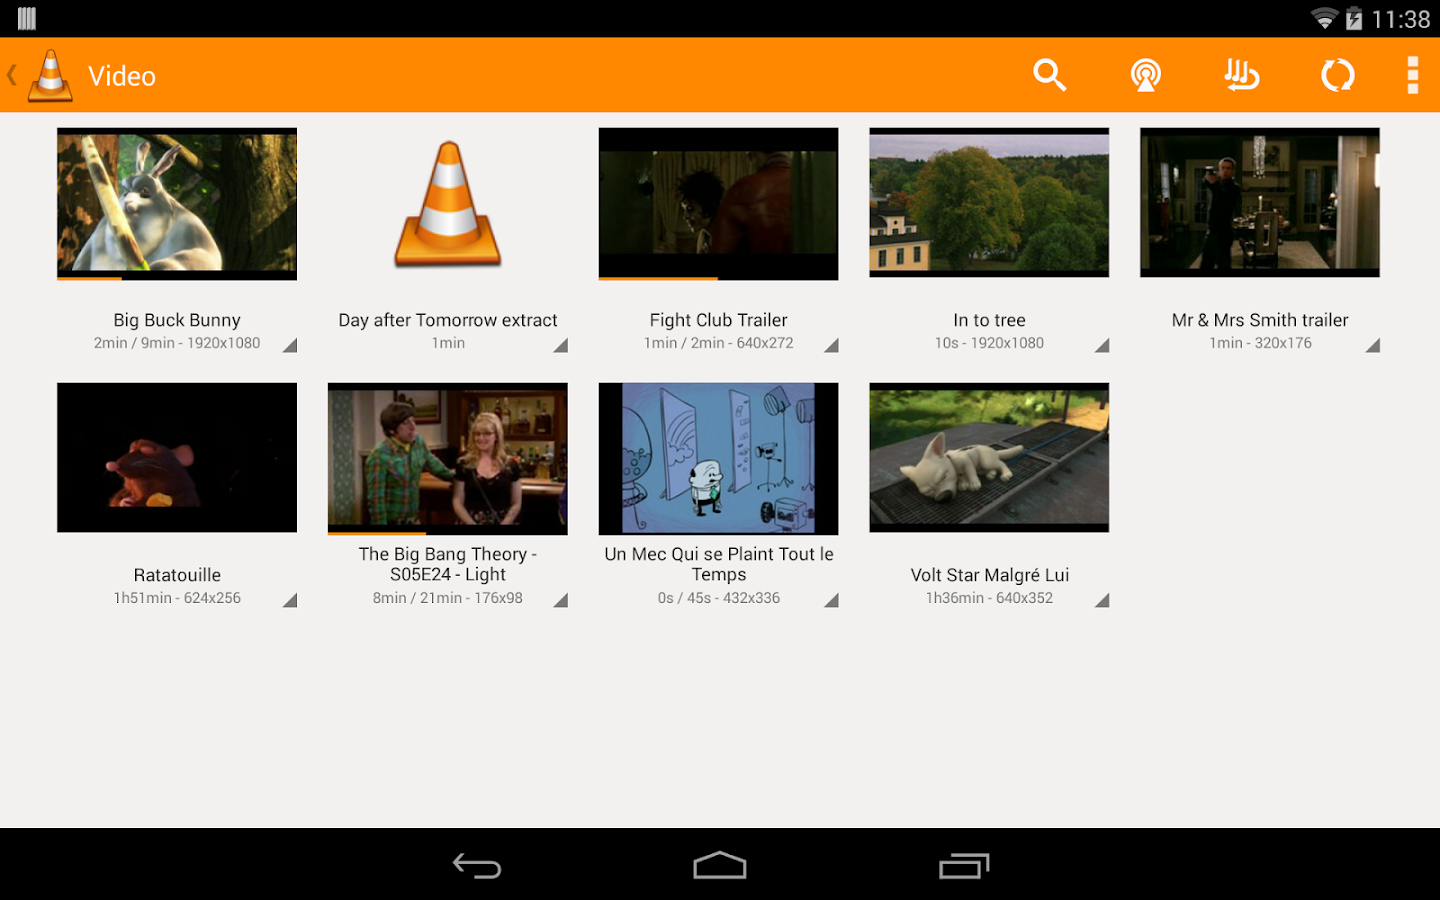 Phone Vlc Media Player Free Download For Android Phone vlc for android beta apps on google play screenshot